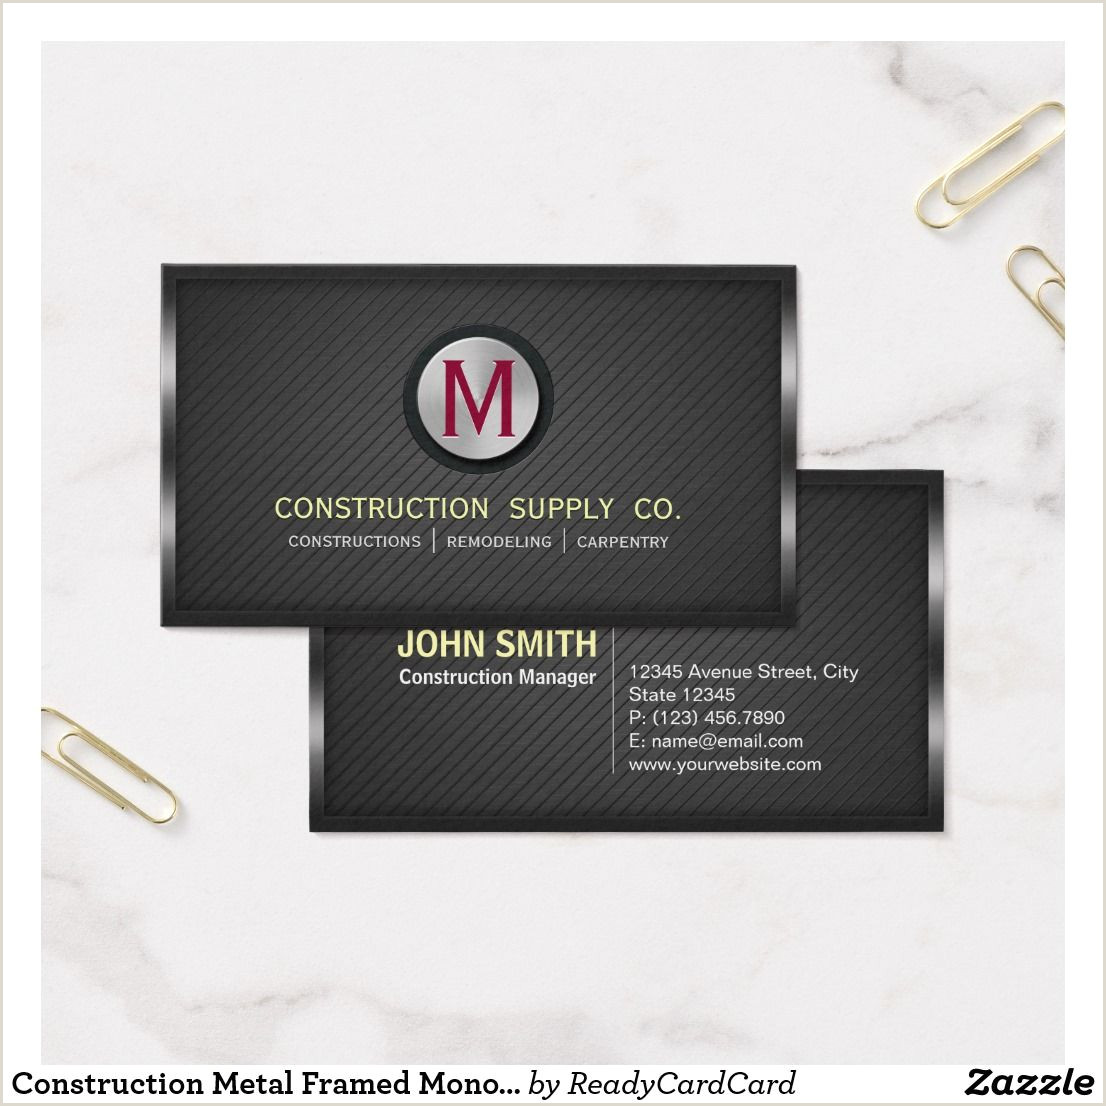 Business Cards Unique Renovation Construction Construction Metal Framed Monogram Twill Material Business